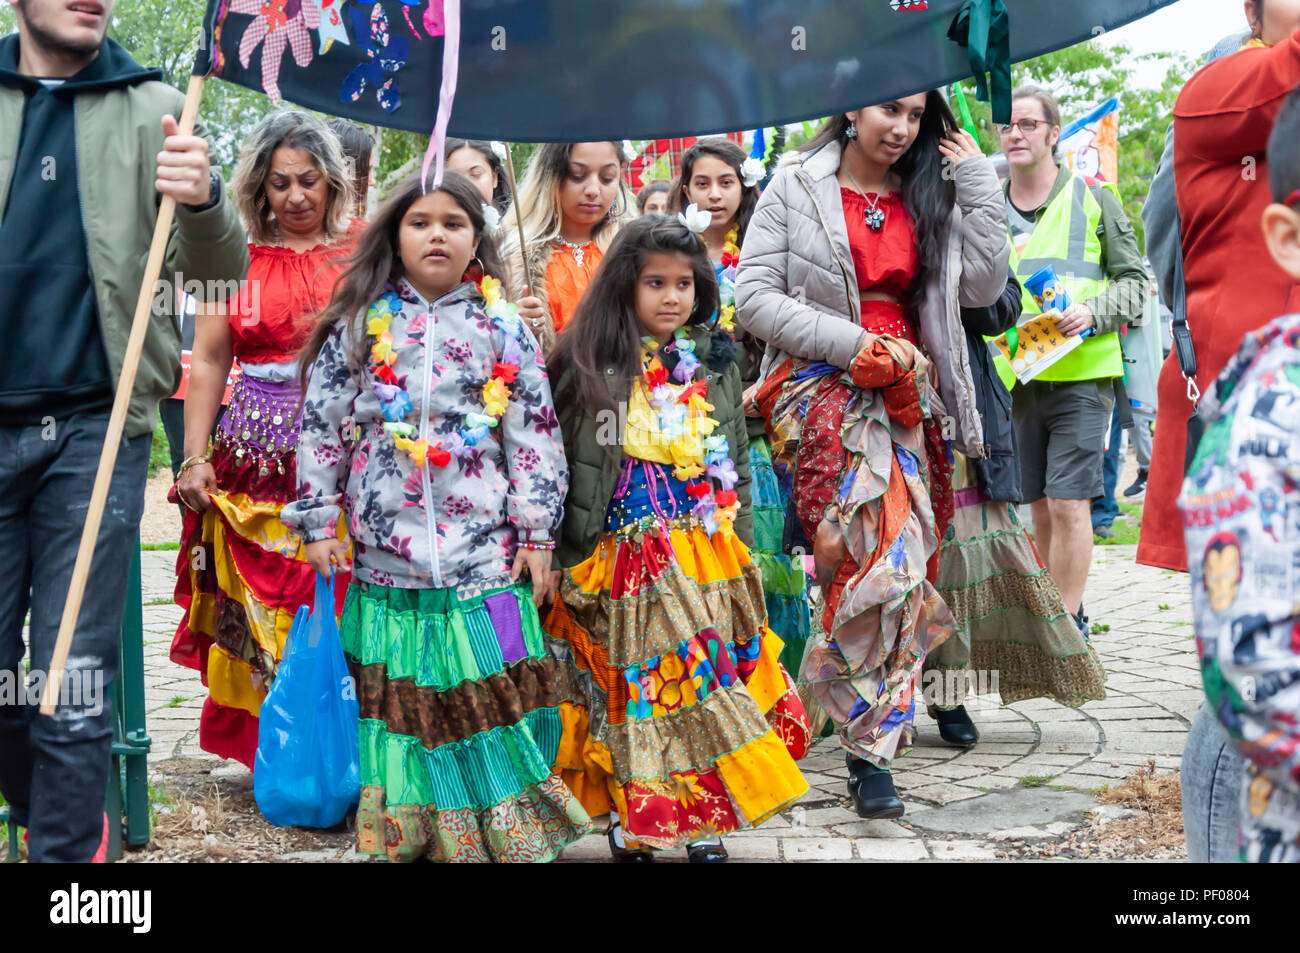 Glasgow, Scotland, UK. 18th August, 2018. Women and girls from the Roma Community at the start of the parade of the Govanhill International Festival & Carnival. This year's parade includes community groups, a pipe band, drummers, dancers, jugglers, roller skaters and a brass band all starting at Govanhill Park and travelling through the streets of Govanhill finishing at the Queen's Park Arena. Credit: Skully/Alamy Live News - Stock Image